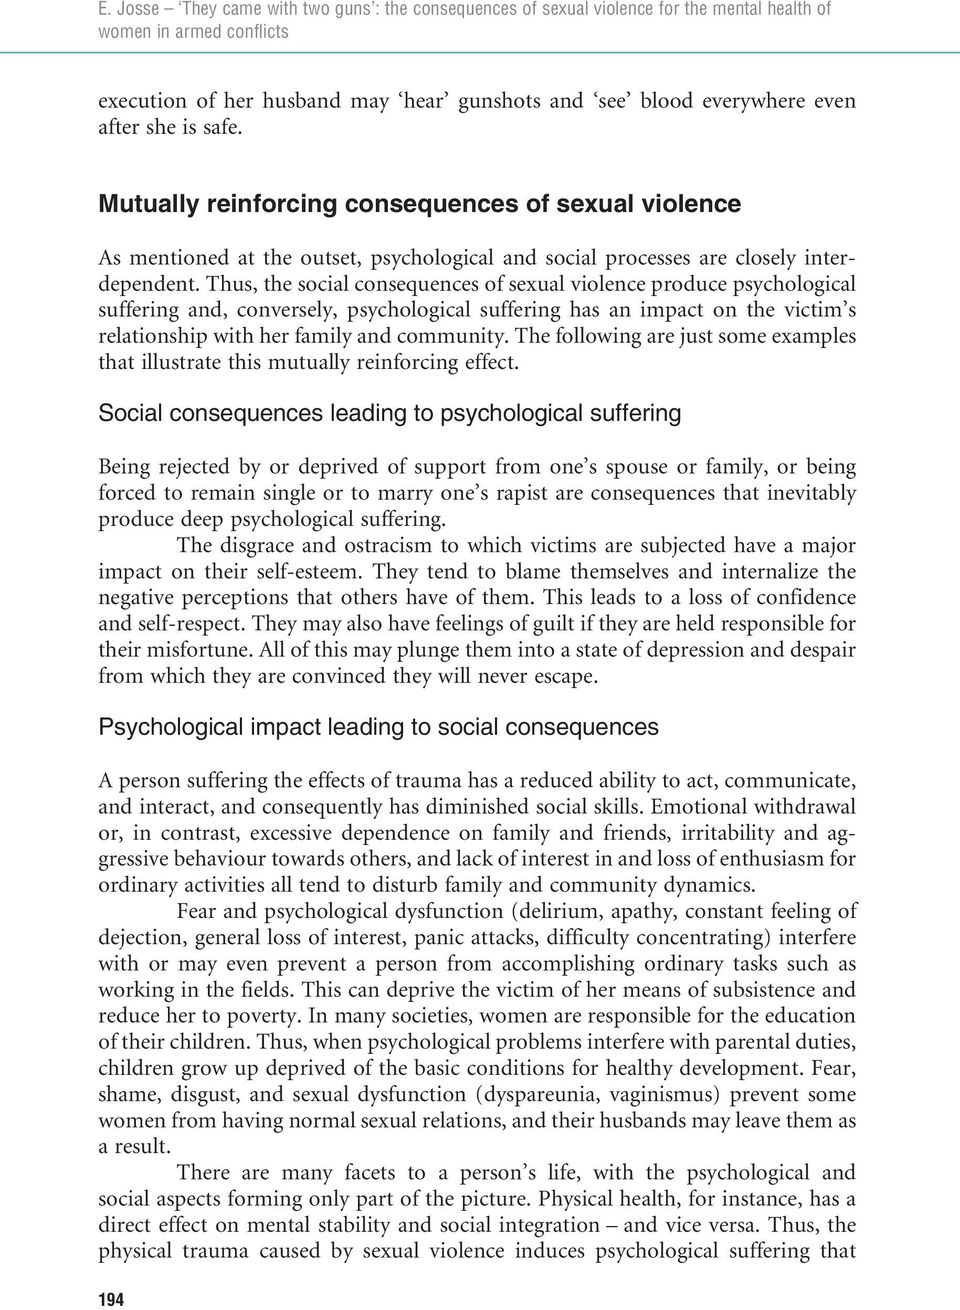 Thus, the social consequences of sexual violence produce psychological suffering and, conversely, psychological suffering has an impact on the victim s relationship with her family and community.